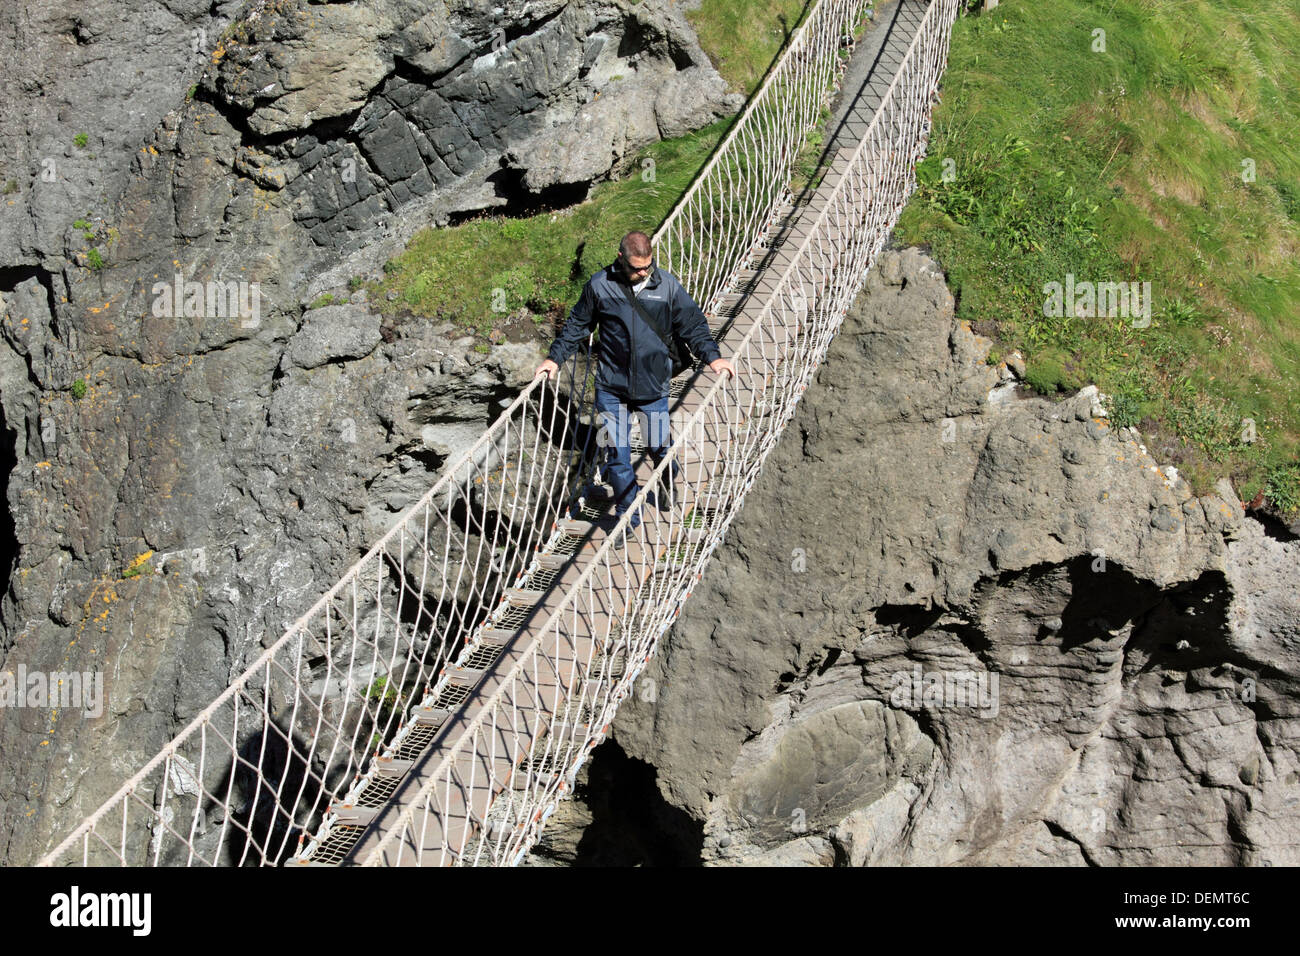 Man crossing Carrick-a-Rede rope bridge on the Causeway Coastal Route, Northern Ireland. - Stock Image